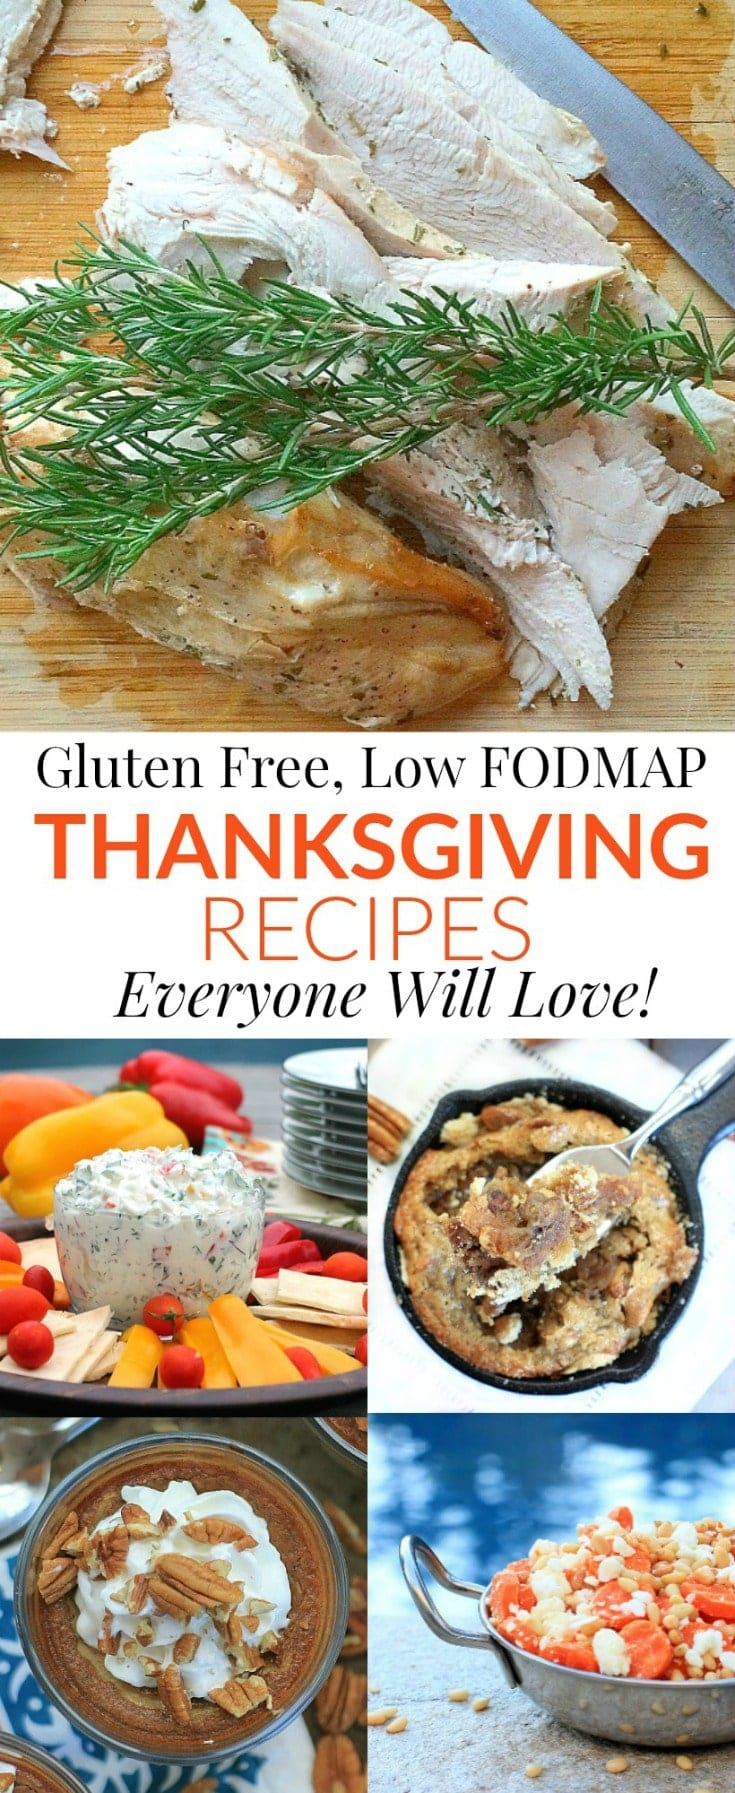 These flavorful gluten free, low FODMAP Thanksgiving recipes are sure to please everyone you're celebrating with this holiday season! #ThanksgivingRecipes #lowFODMAP #GlutenFree #holidays #holidayrecipes